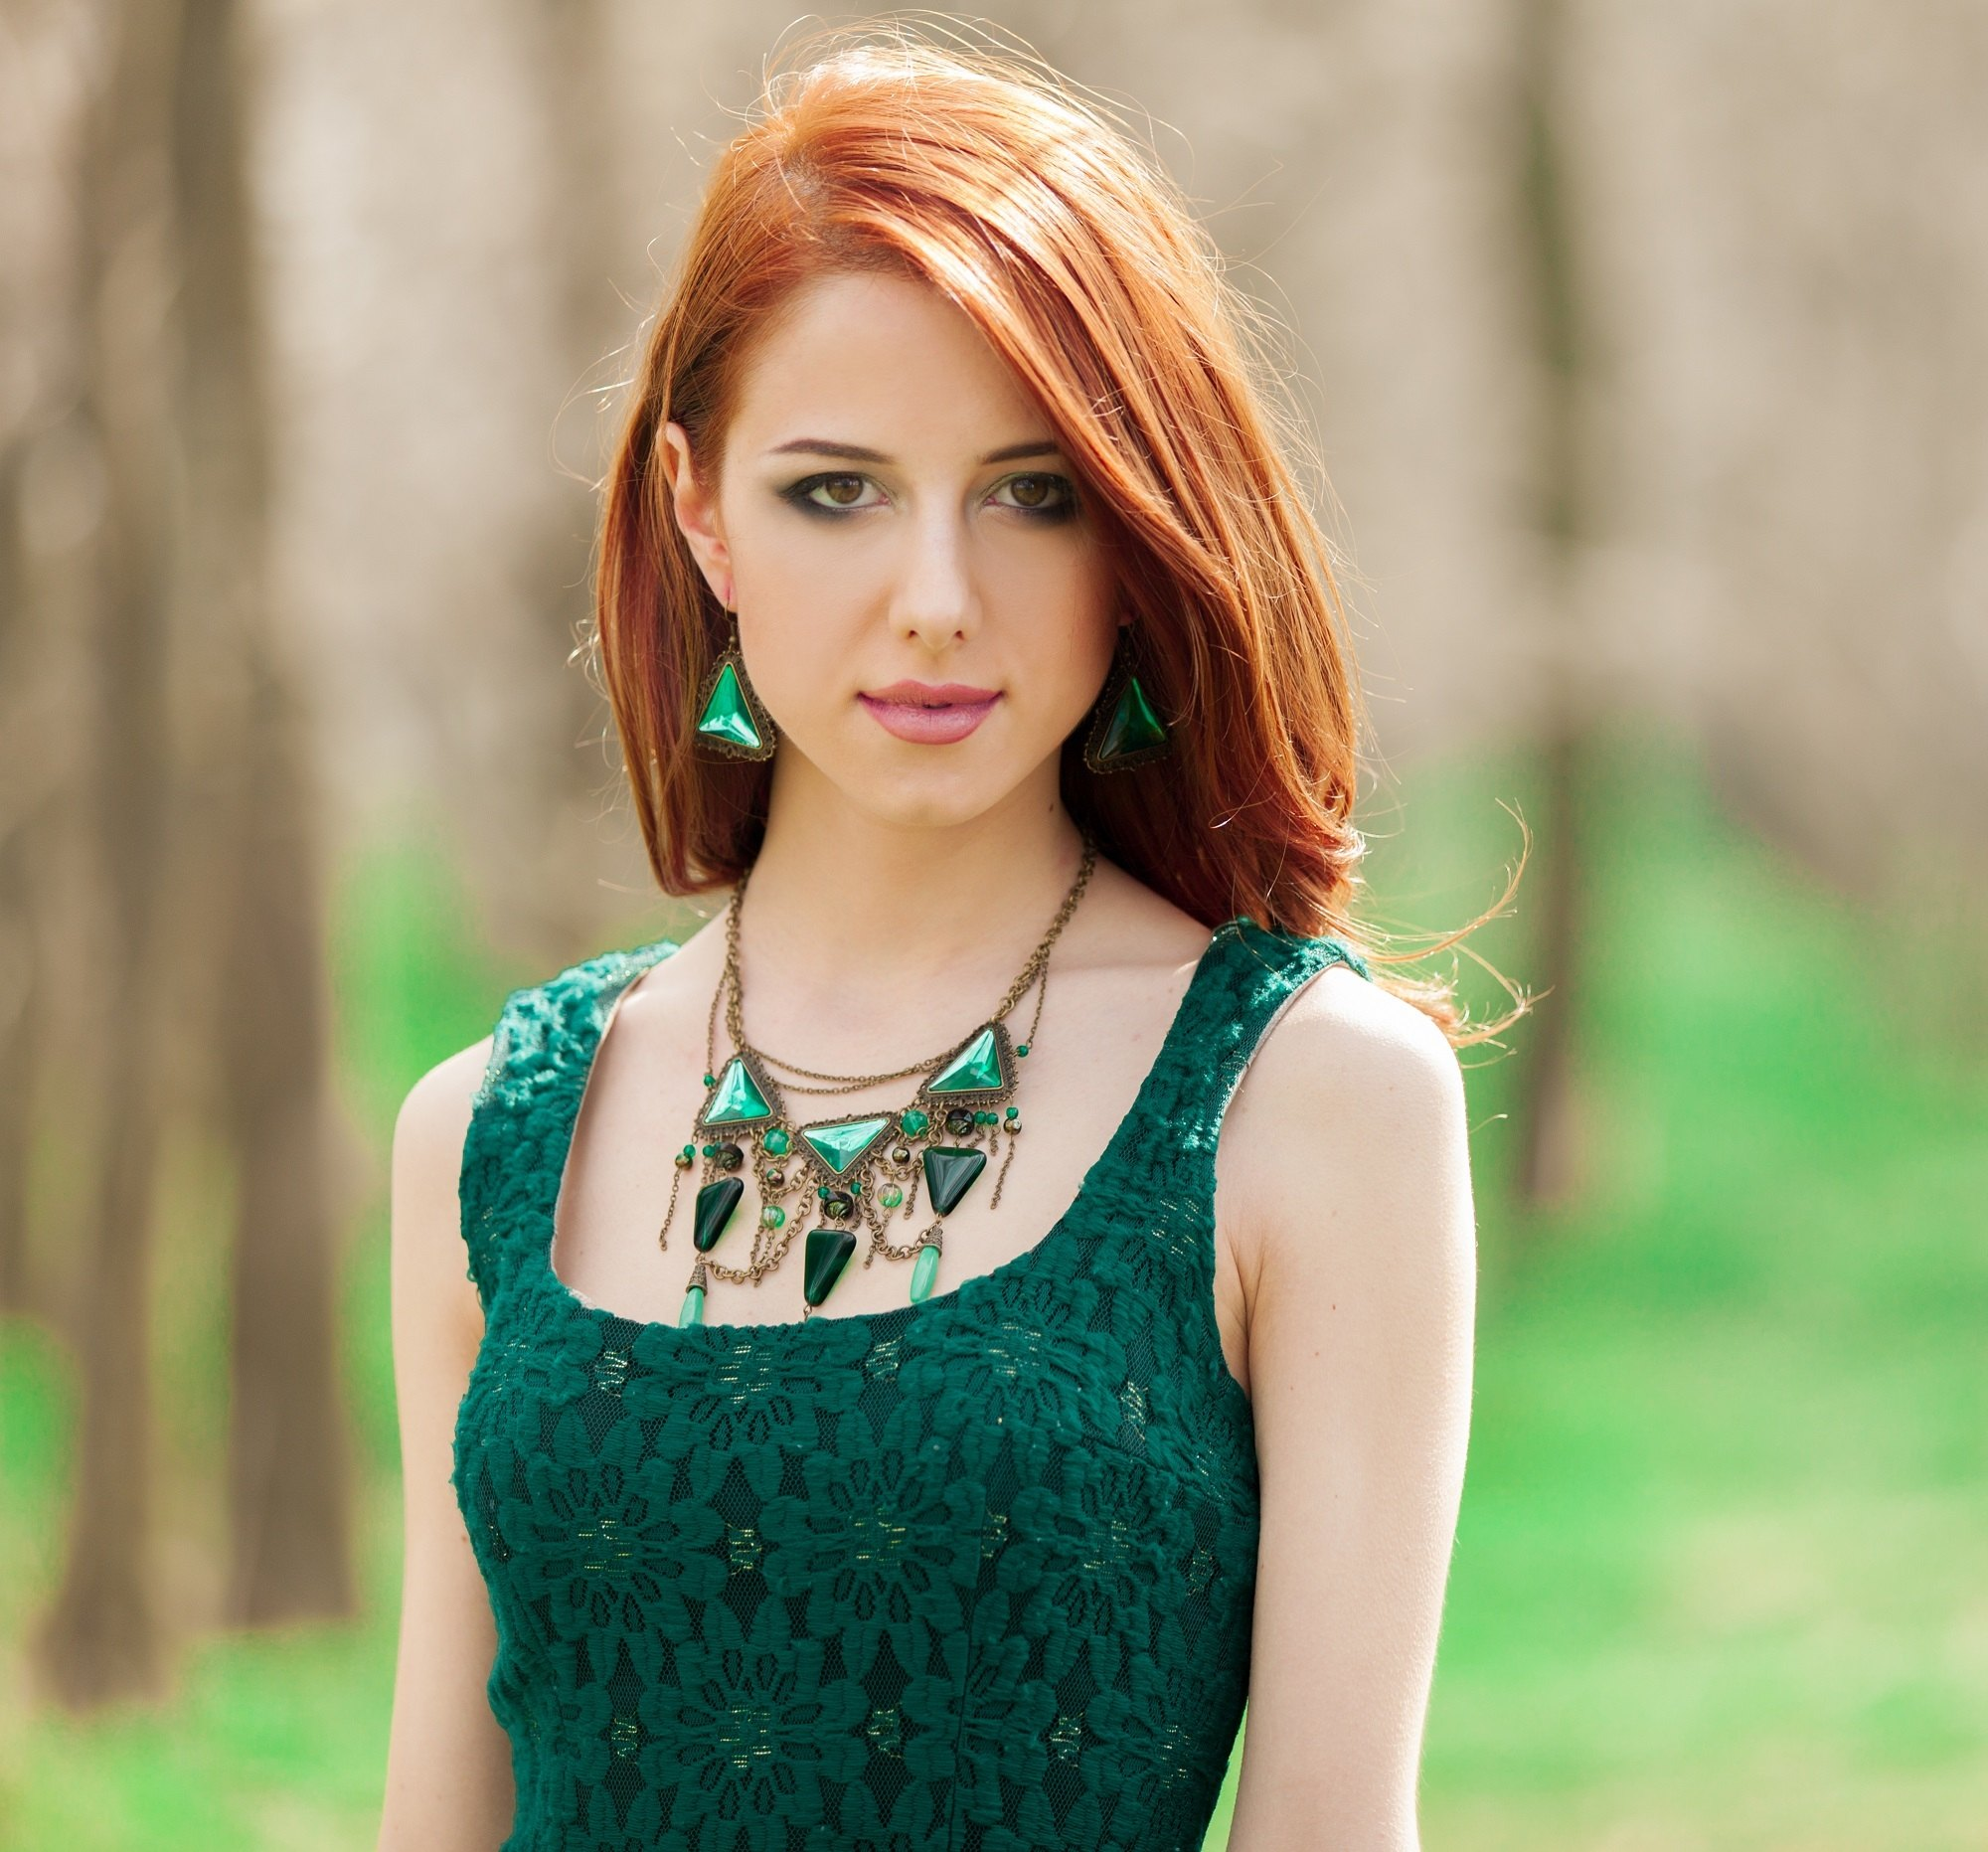 Orange hair: Woman with long red orange hair wearing a green sleeveless dress outdoors